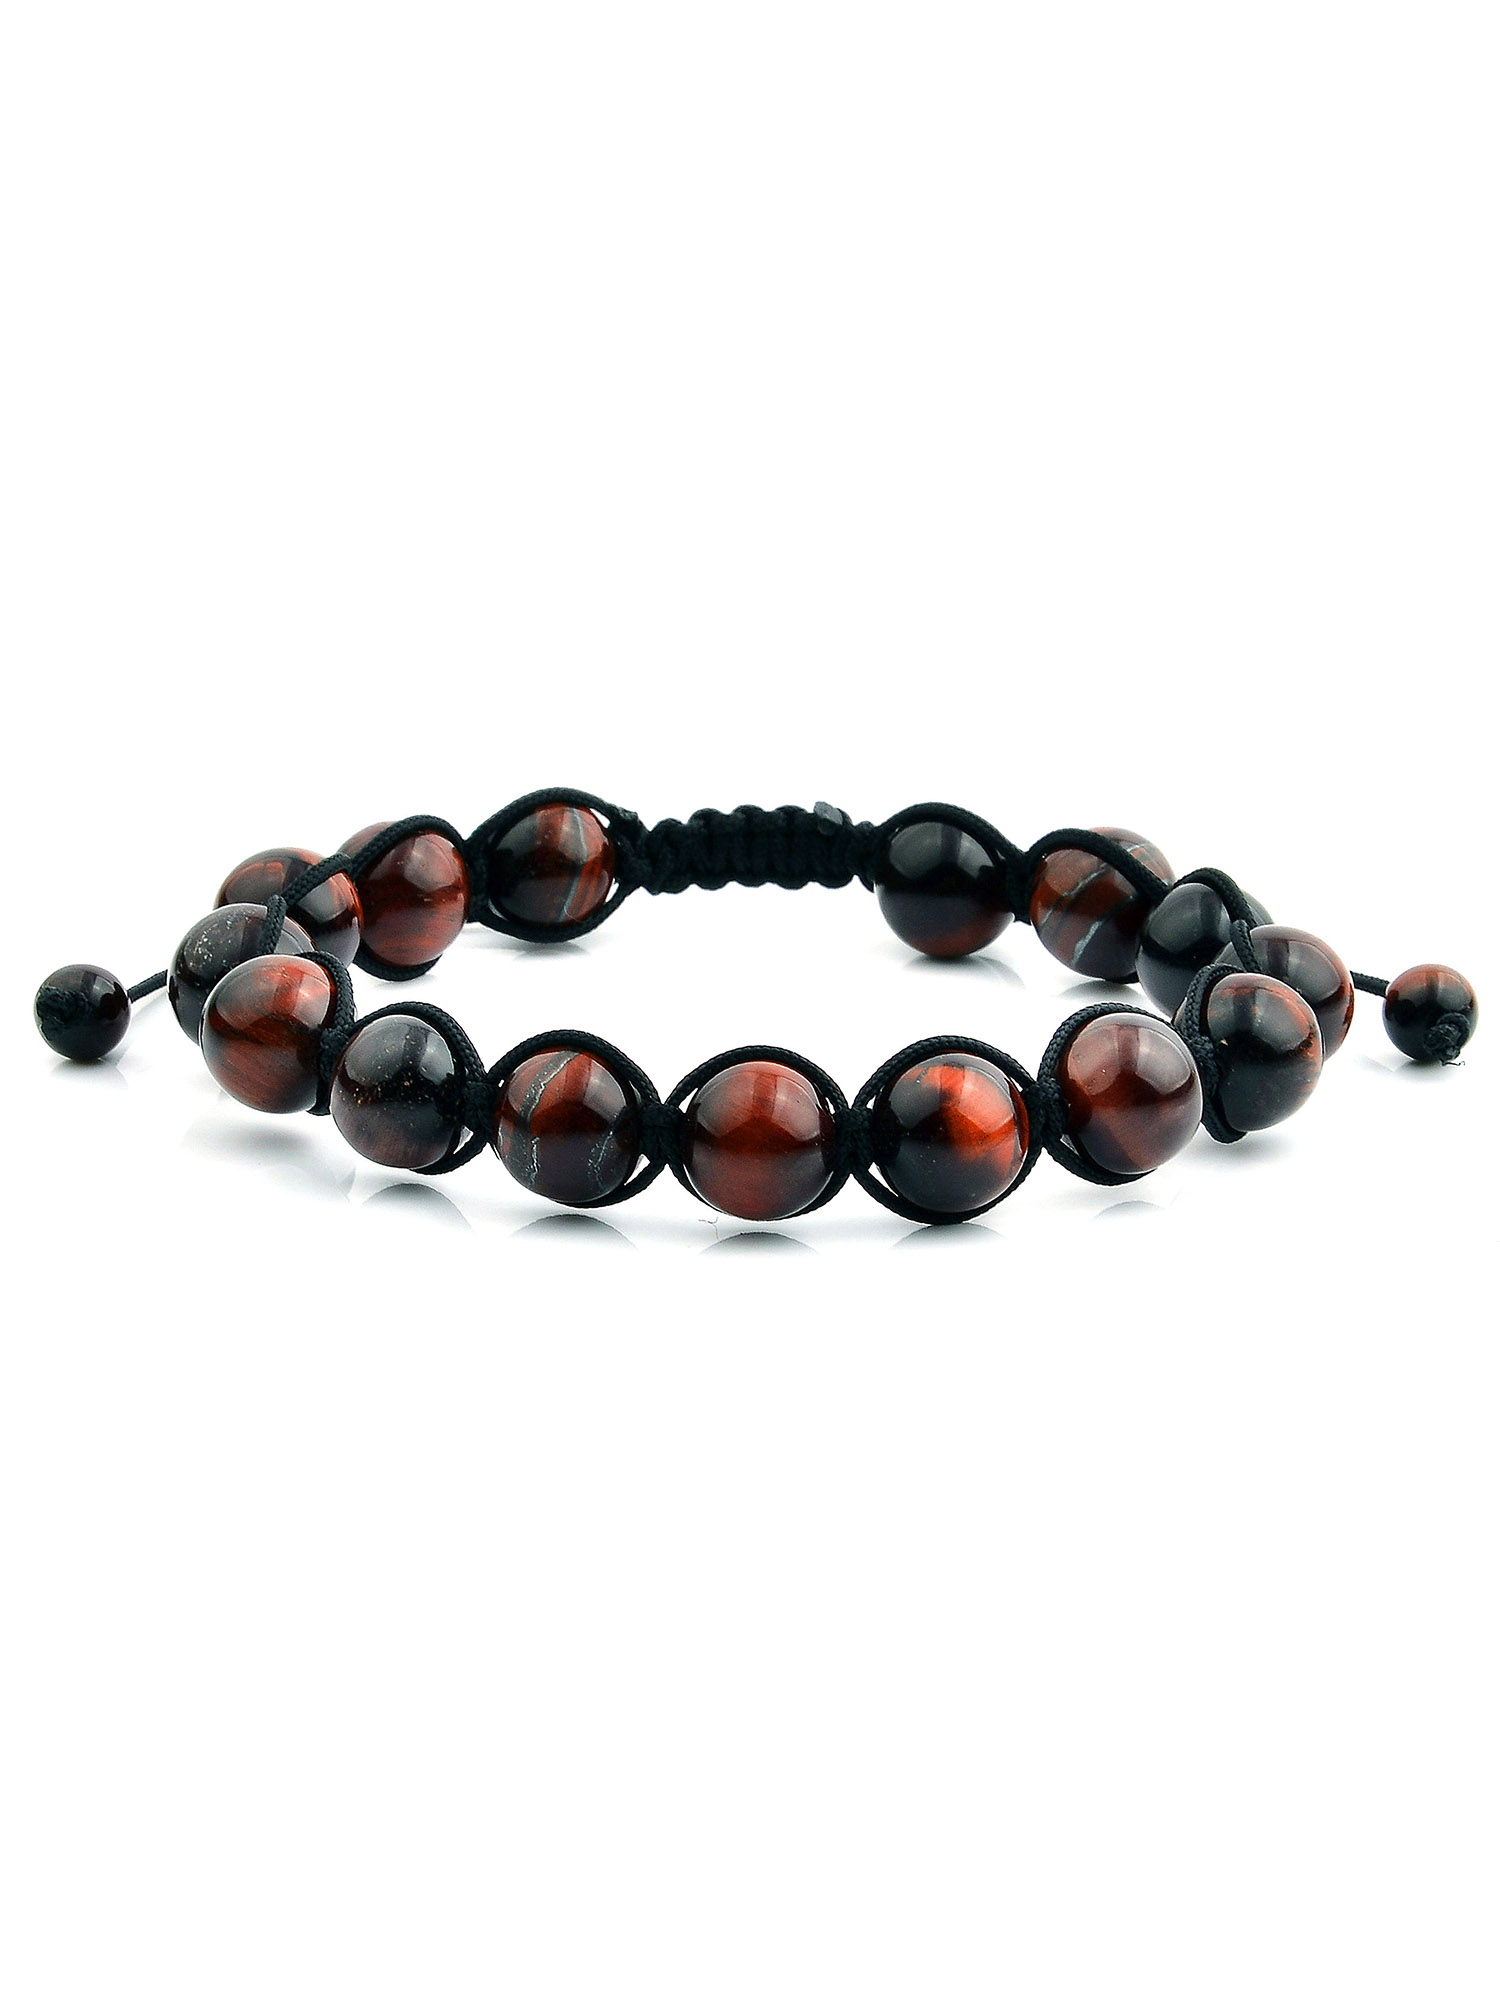 Men's Turquoise Polished Bead Adjustable Bracelet (10mm)